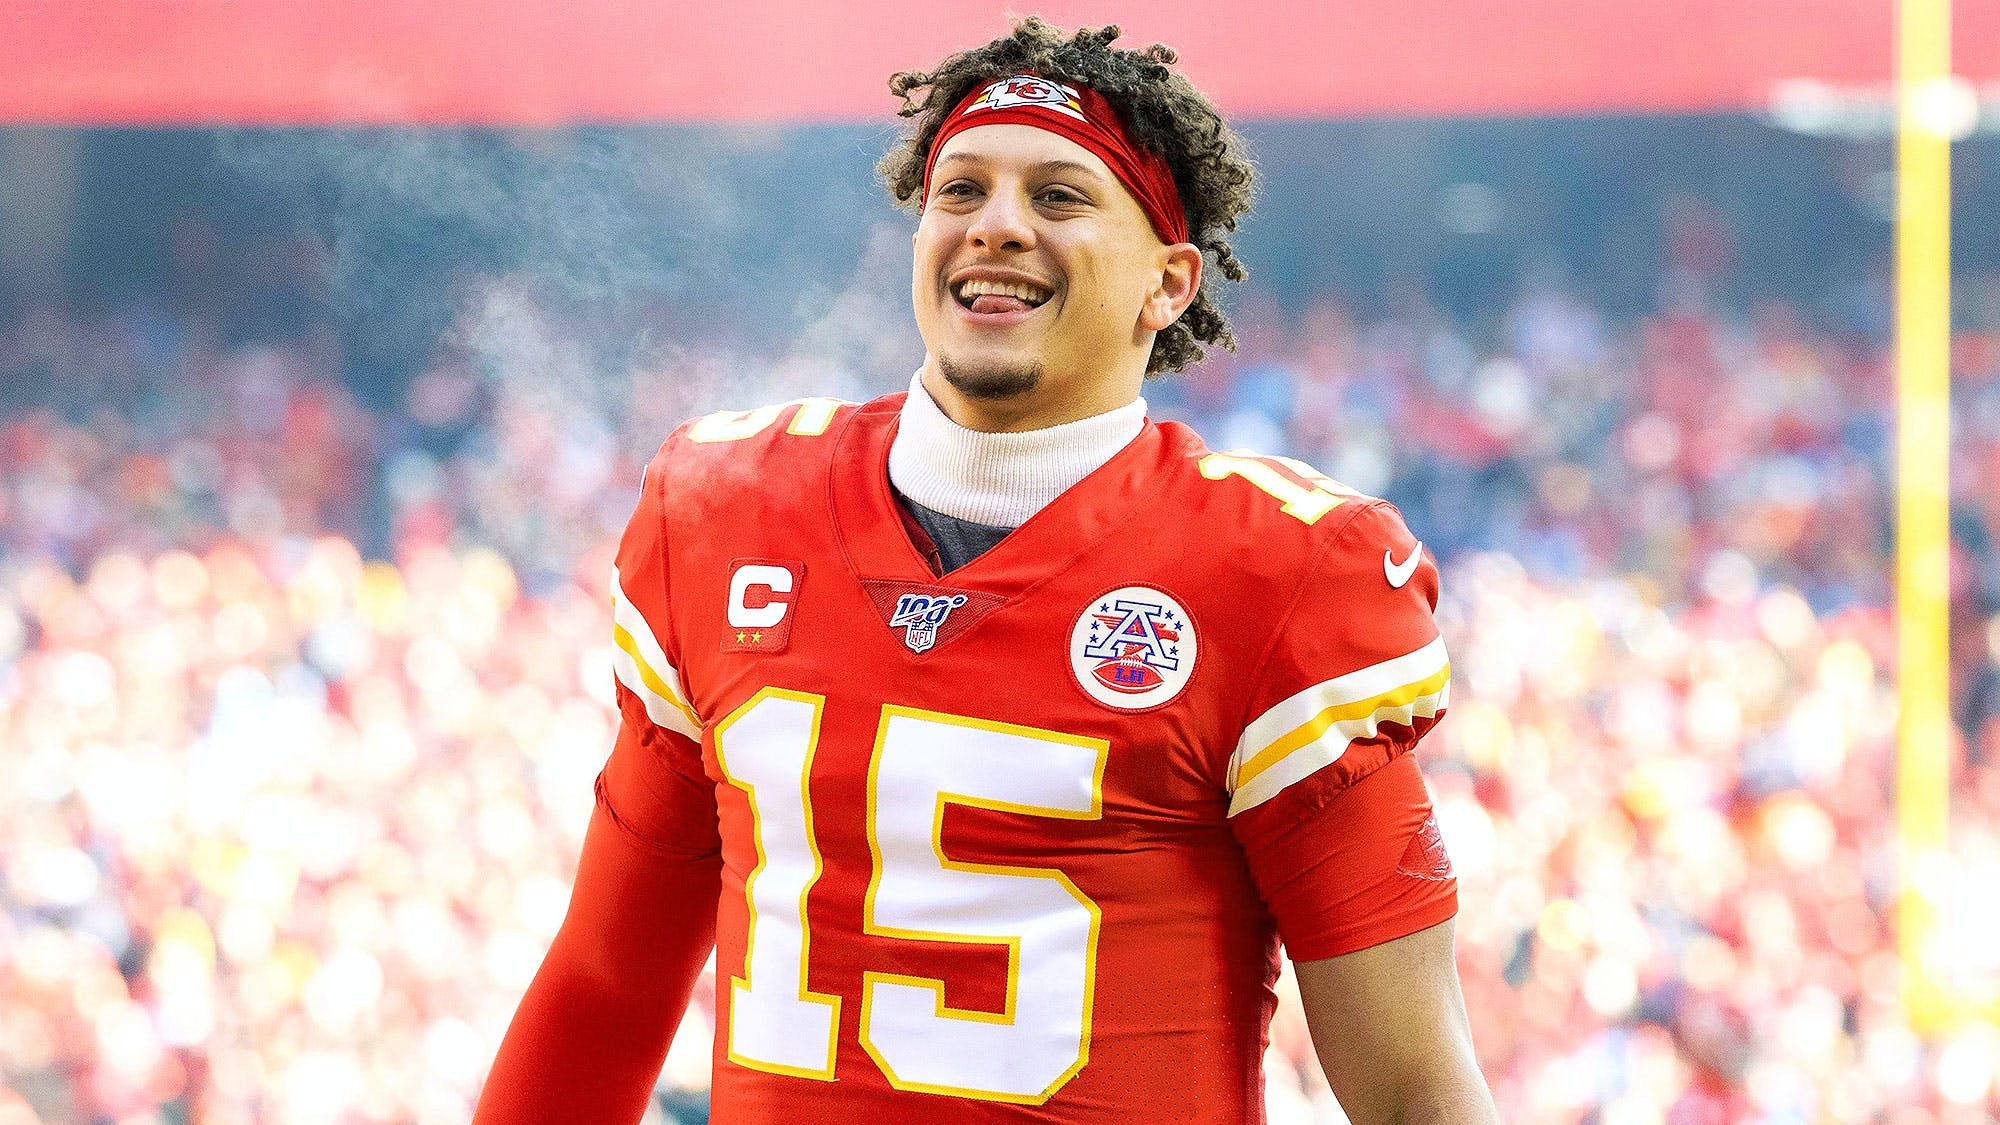 Super Bowl Mvp, Patrick Mahomes 'Signs 10-Year Extension With The Kansas Chiefs Worth $450 Million, The Richest Deal In Sports History